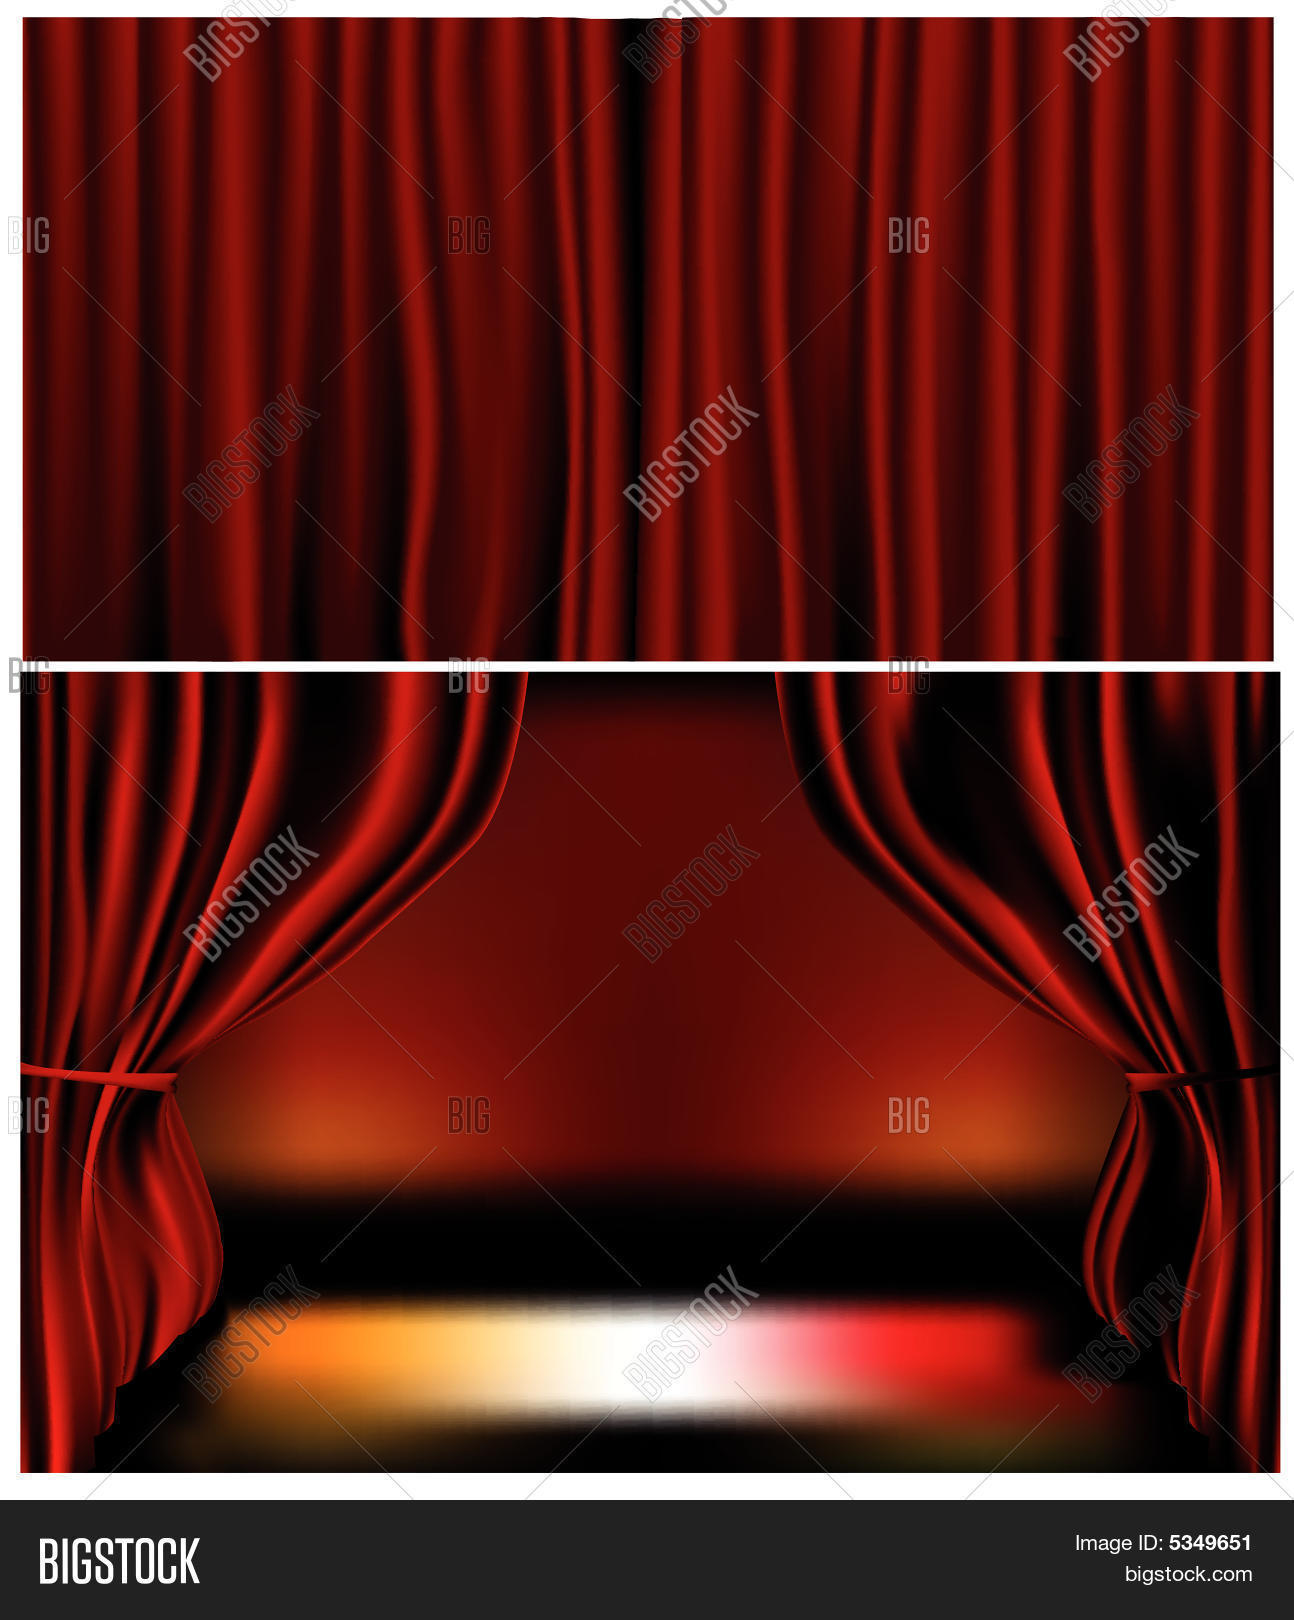 curtain red curtains dolls velvet gold accessory house fringe window